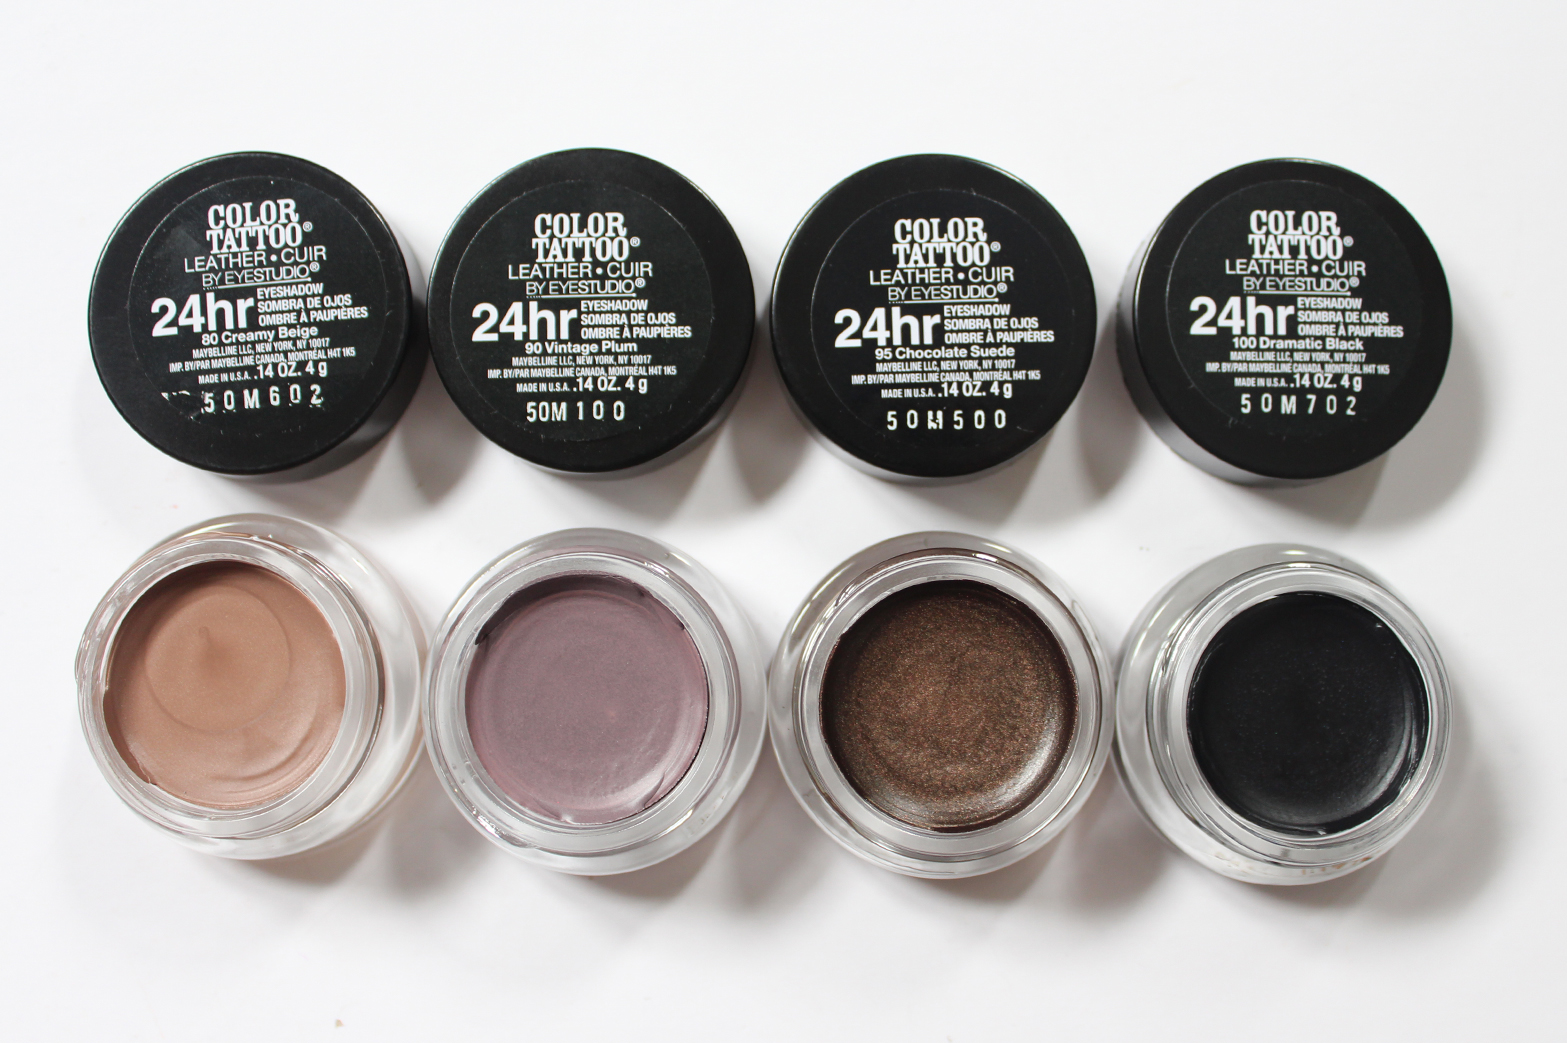 Maybelline Color Tattoo 24hr Eyeshadow Leather Review